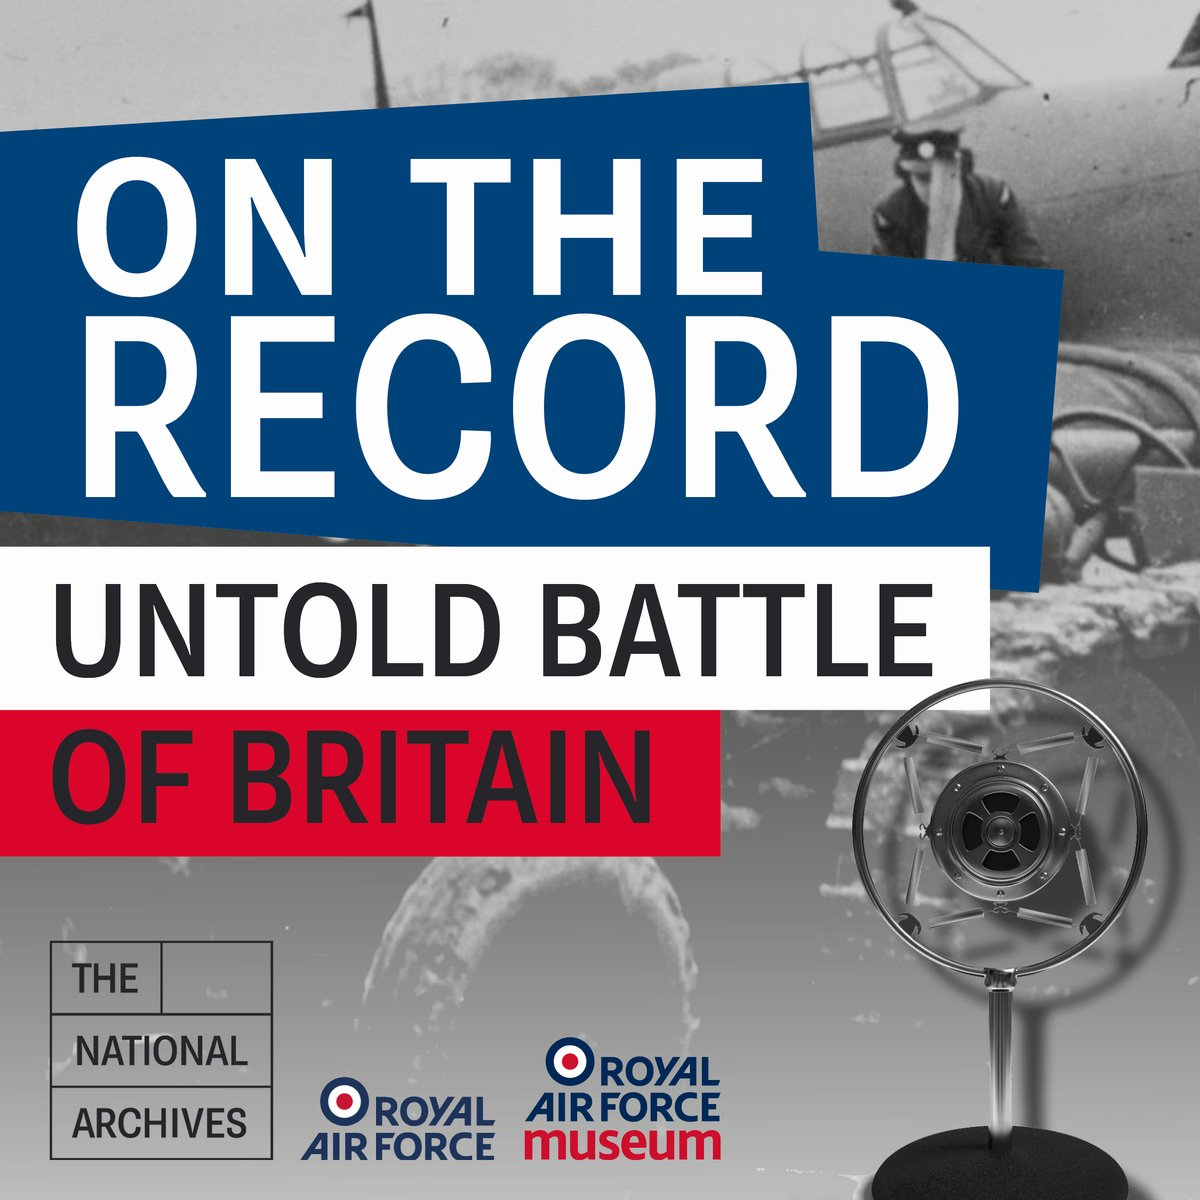 Don't miss Untold Battle of Britain, the latest episode of #OnTheRecord. This tells lesser-known stories from the Battle: The women who took part, those who travelled from abroad to join the RAF & the engineers who kept aircraft flying. pod.link/1460242815/epi… #DetectAndDefend